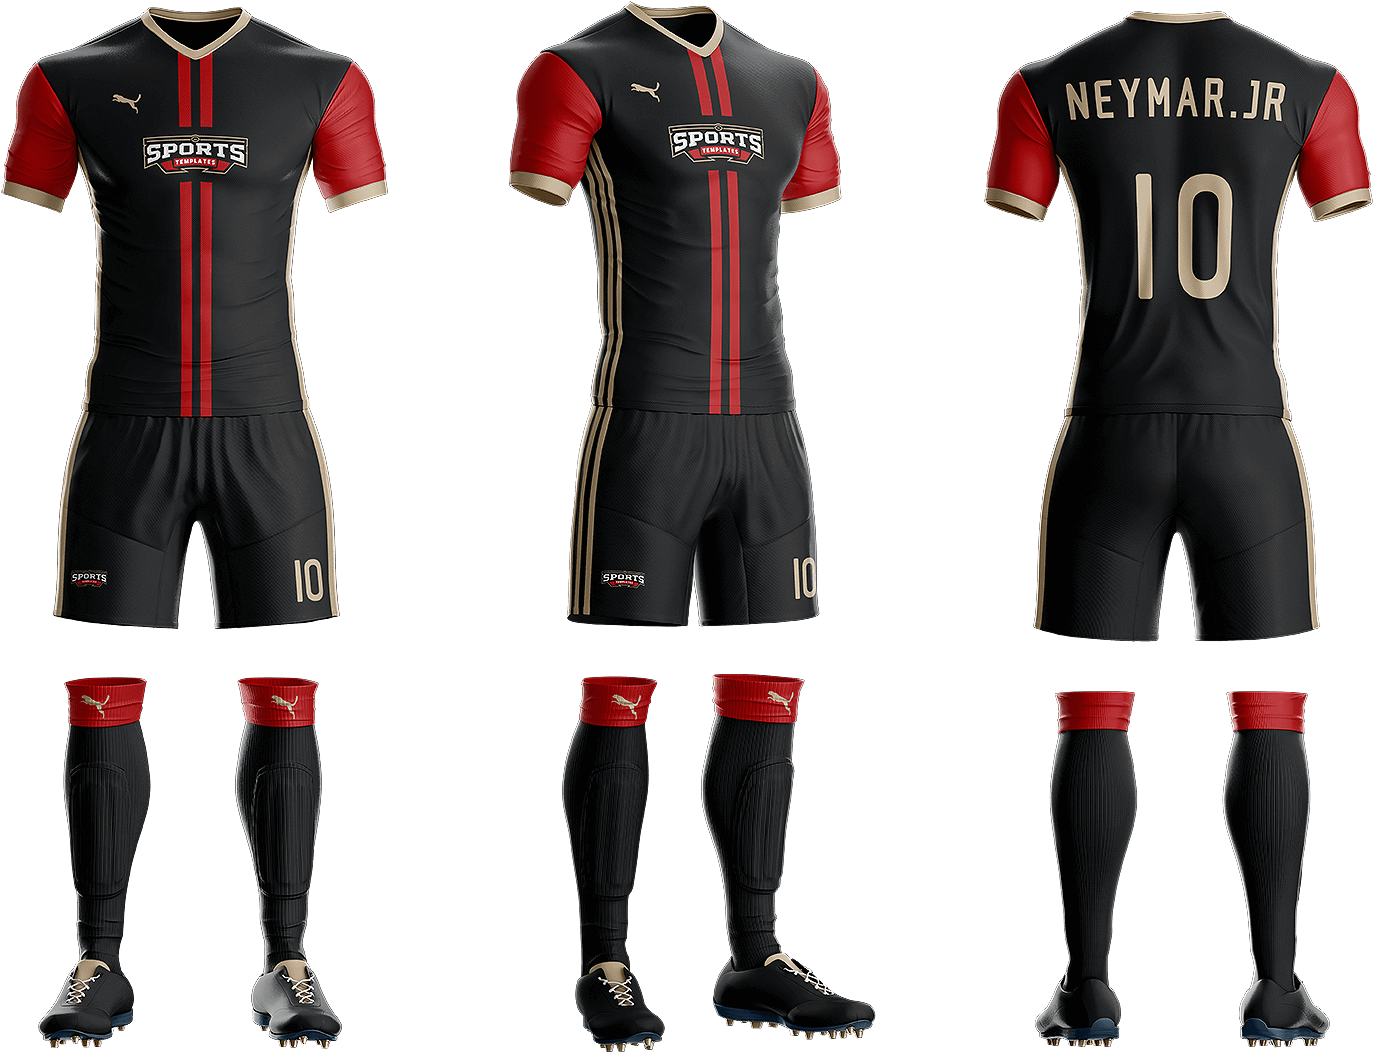 Download Goal Soccer Kit Jersey Uniform Template Psd.